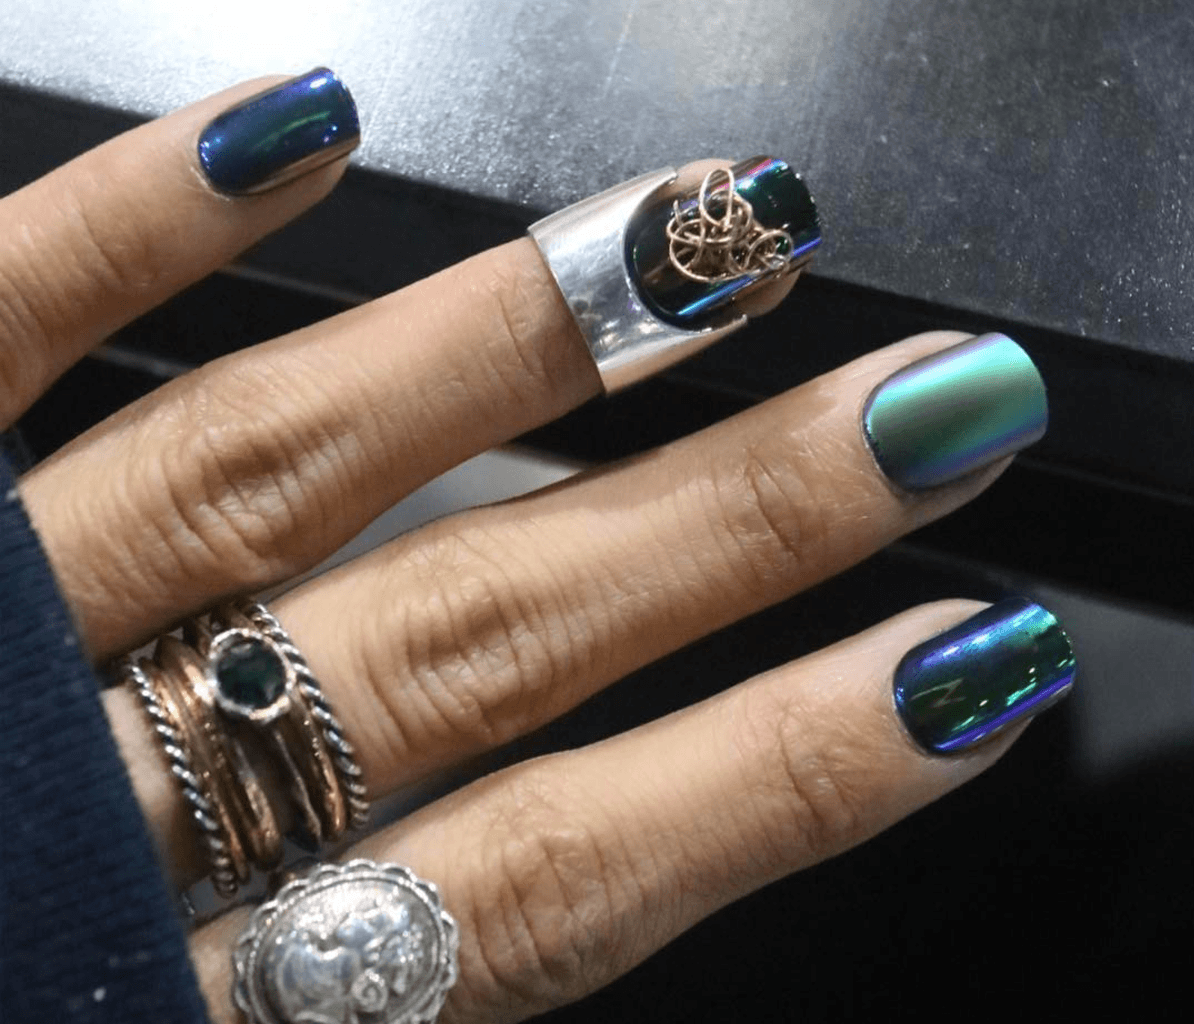 12 Unique Trending Nail Art Designs For 2017: 7 Of The Most Creative Trends In Korean Nail Art That Will